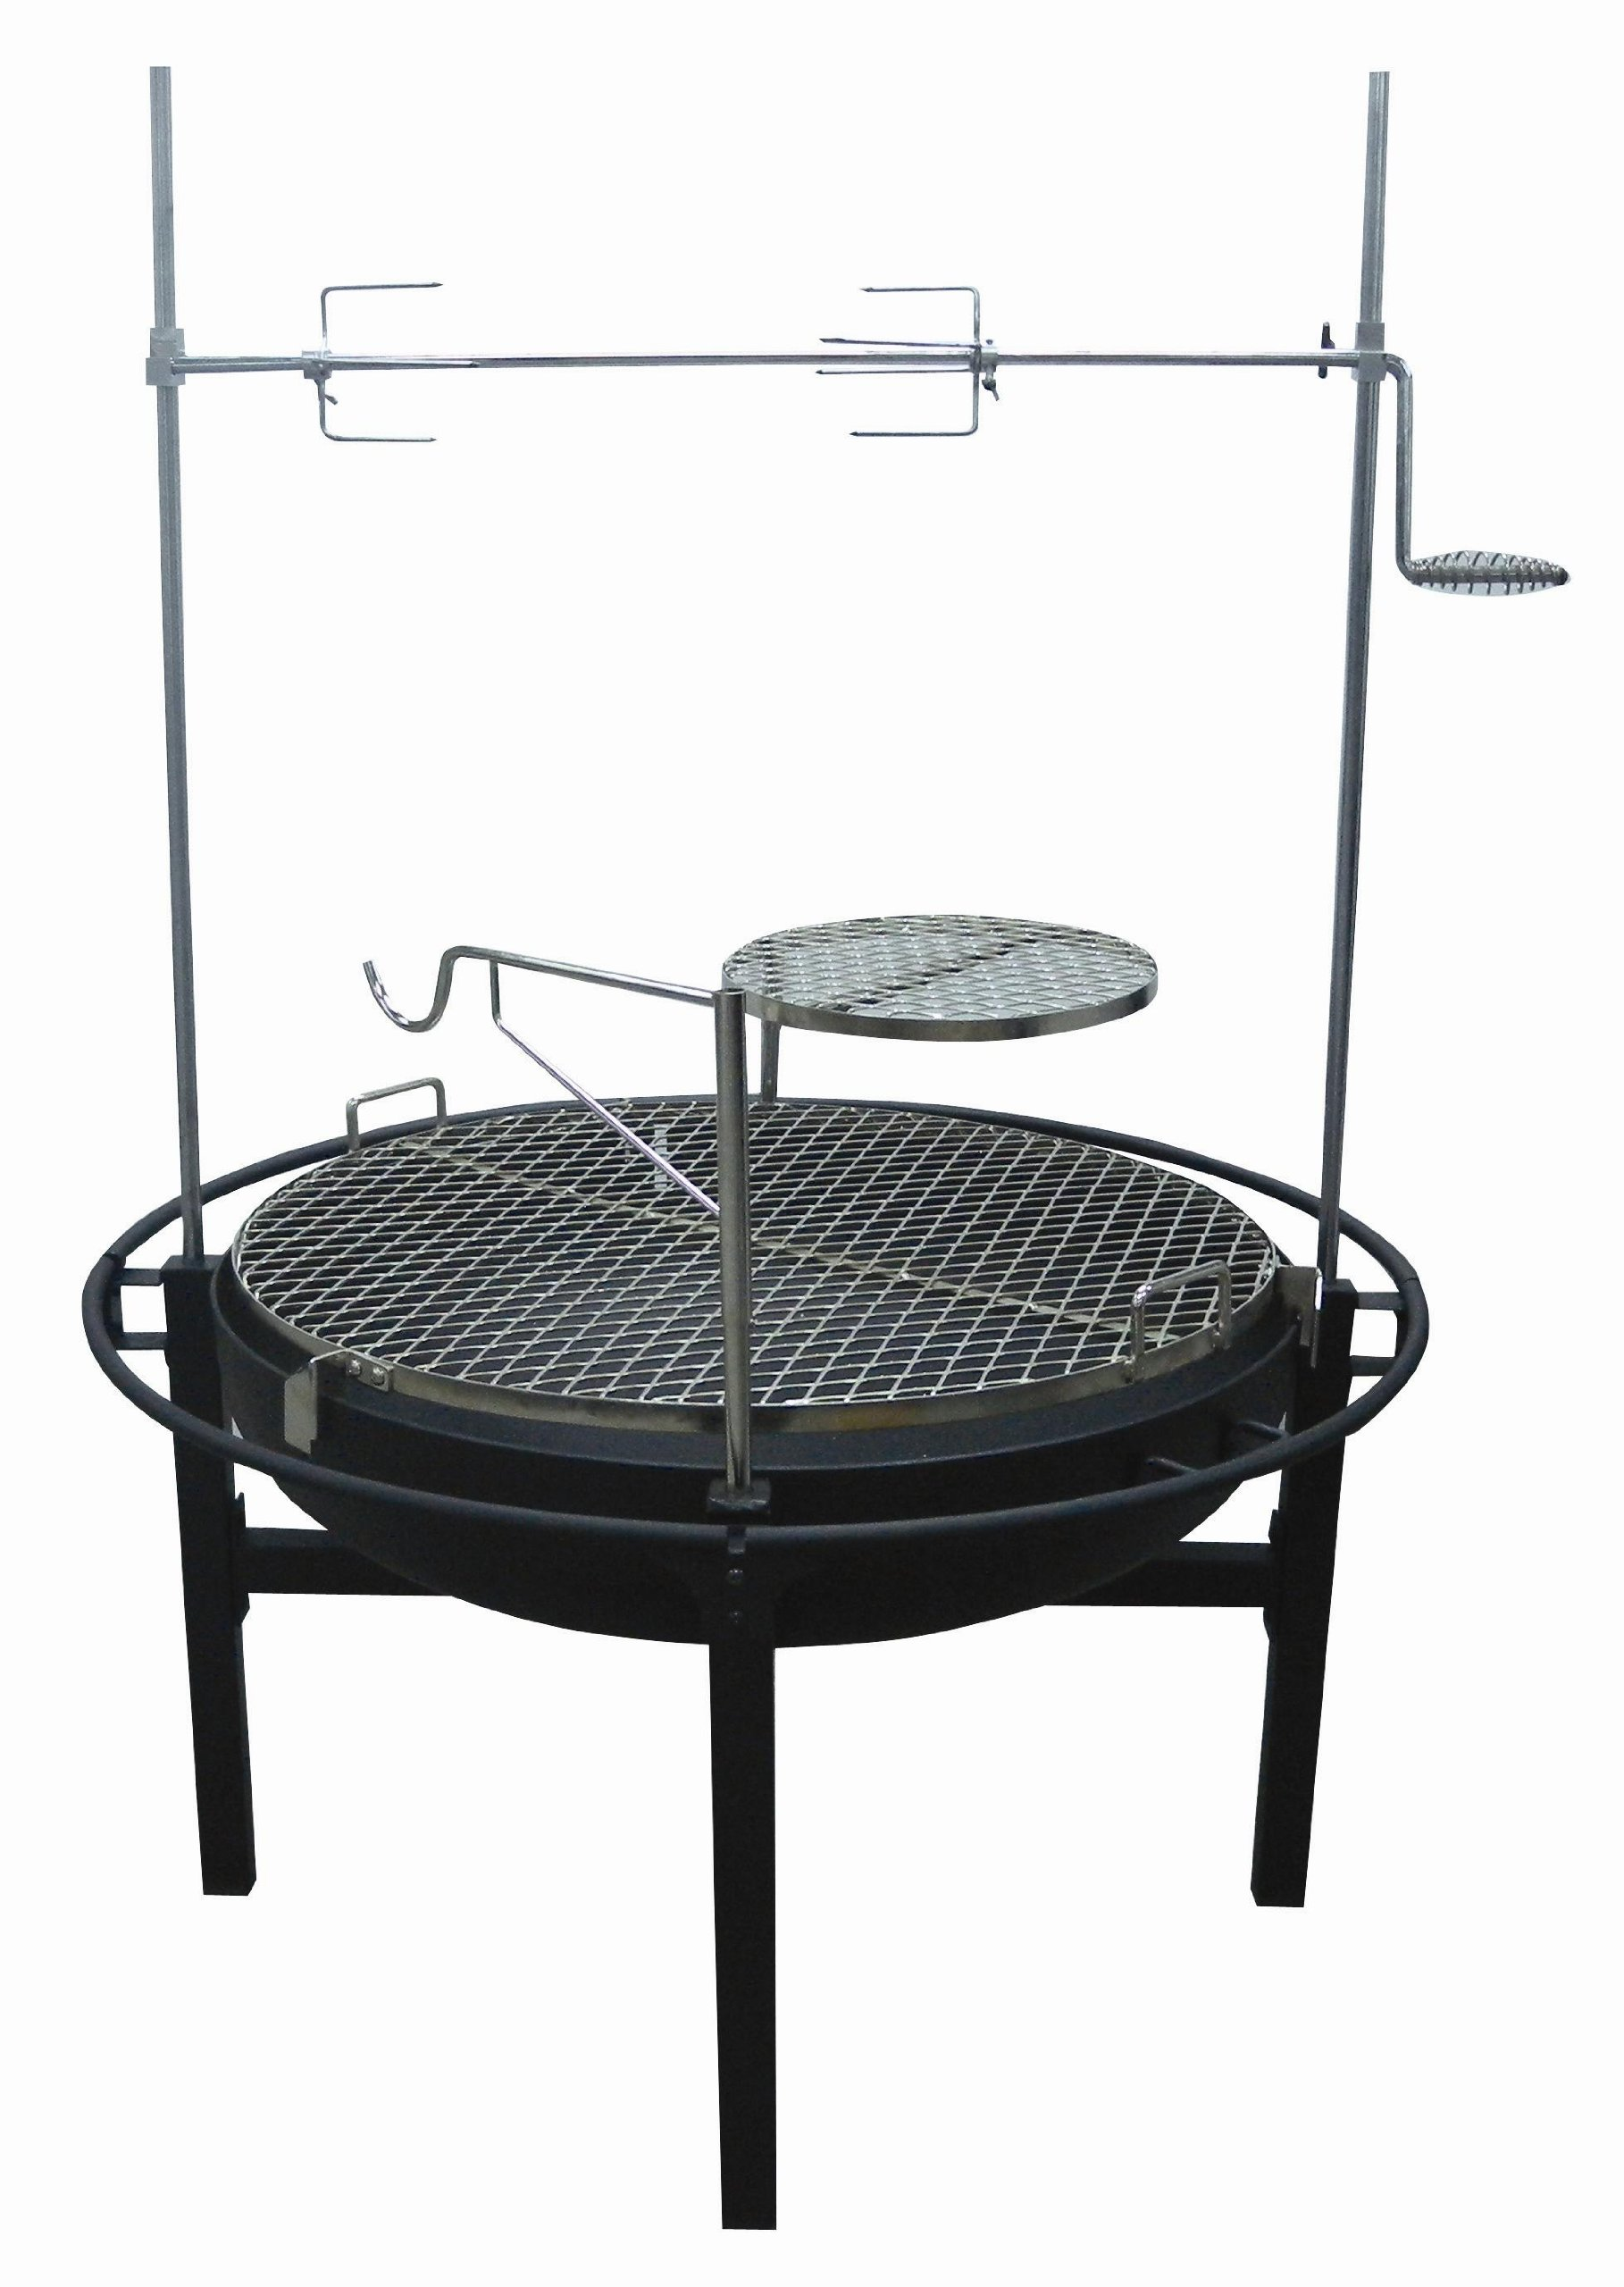 Rancher Fire Pit Charcoal Grill with Rotisserie, 31-Inch